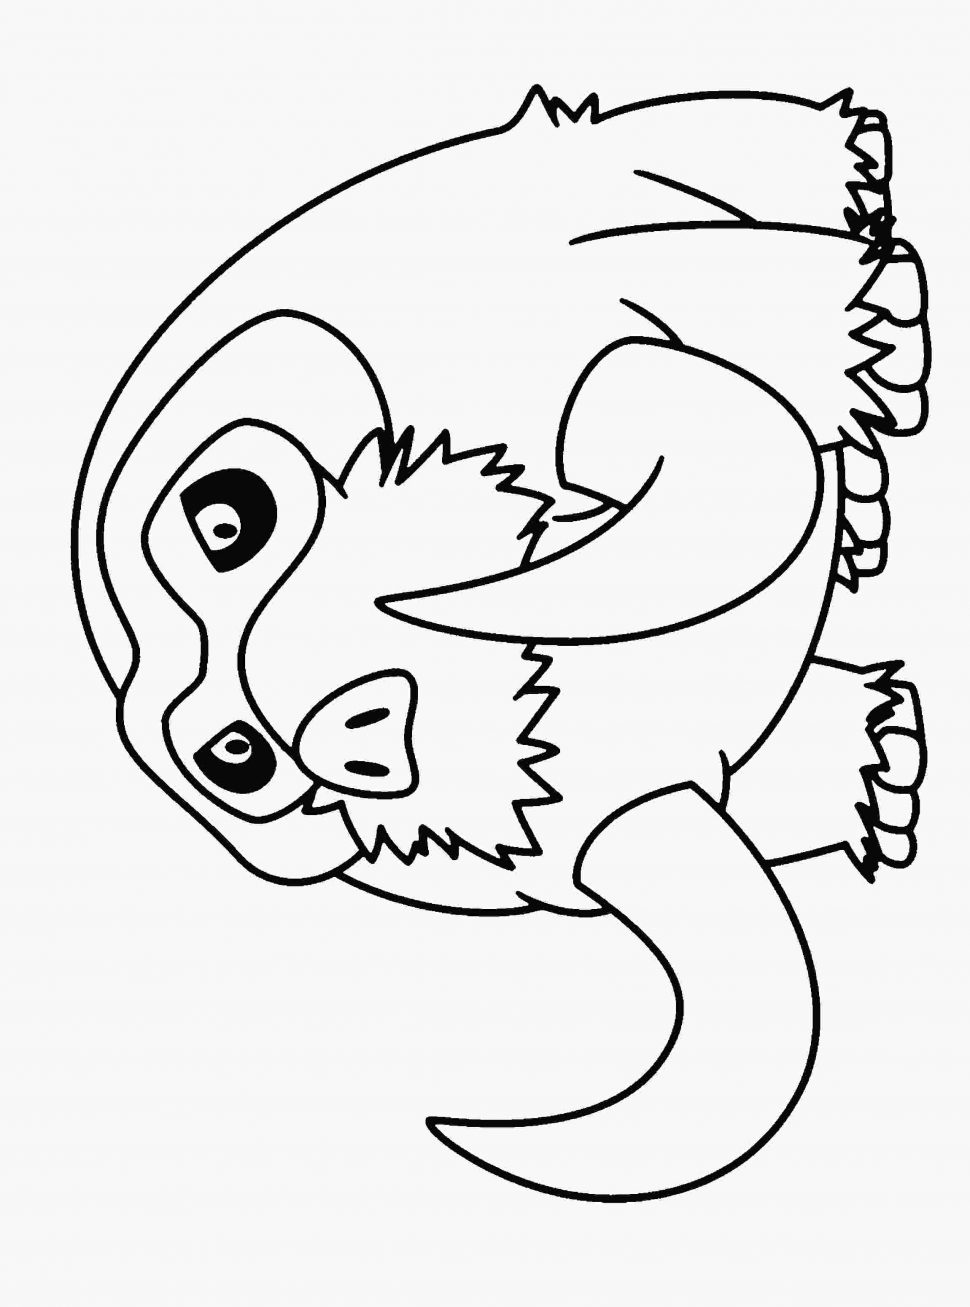 pokemon ultra ball coloring pages pokemon ultra ball coloring pages sketch coloring page ball pokemon ultra pages coloring